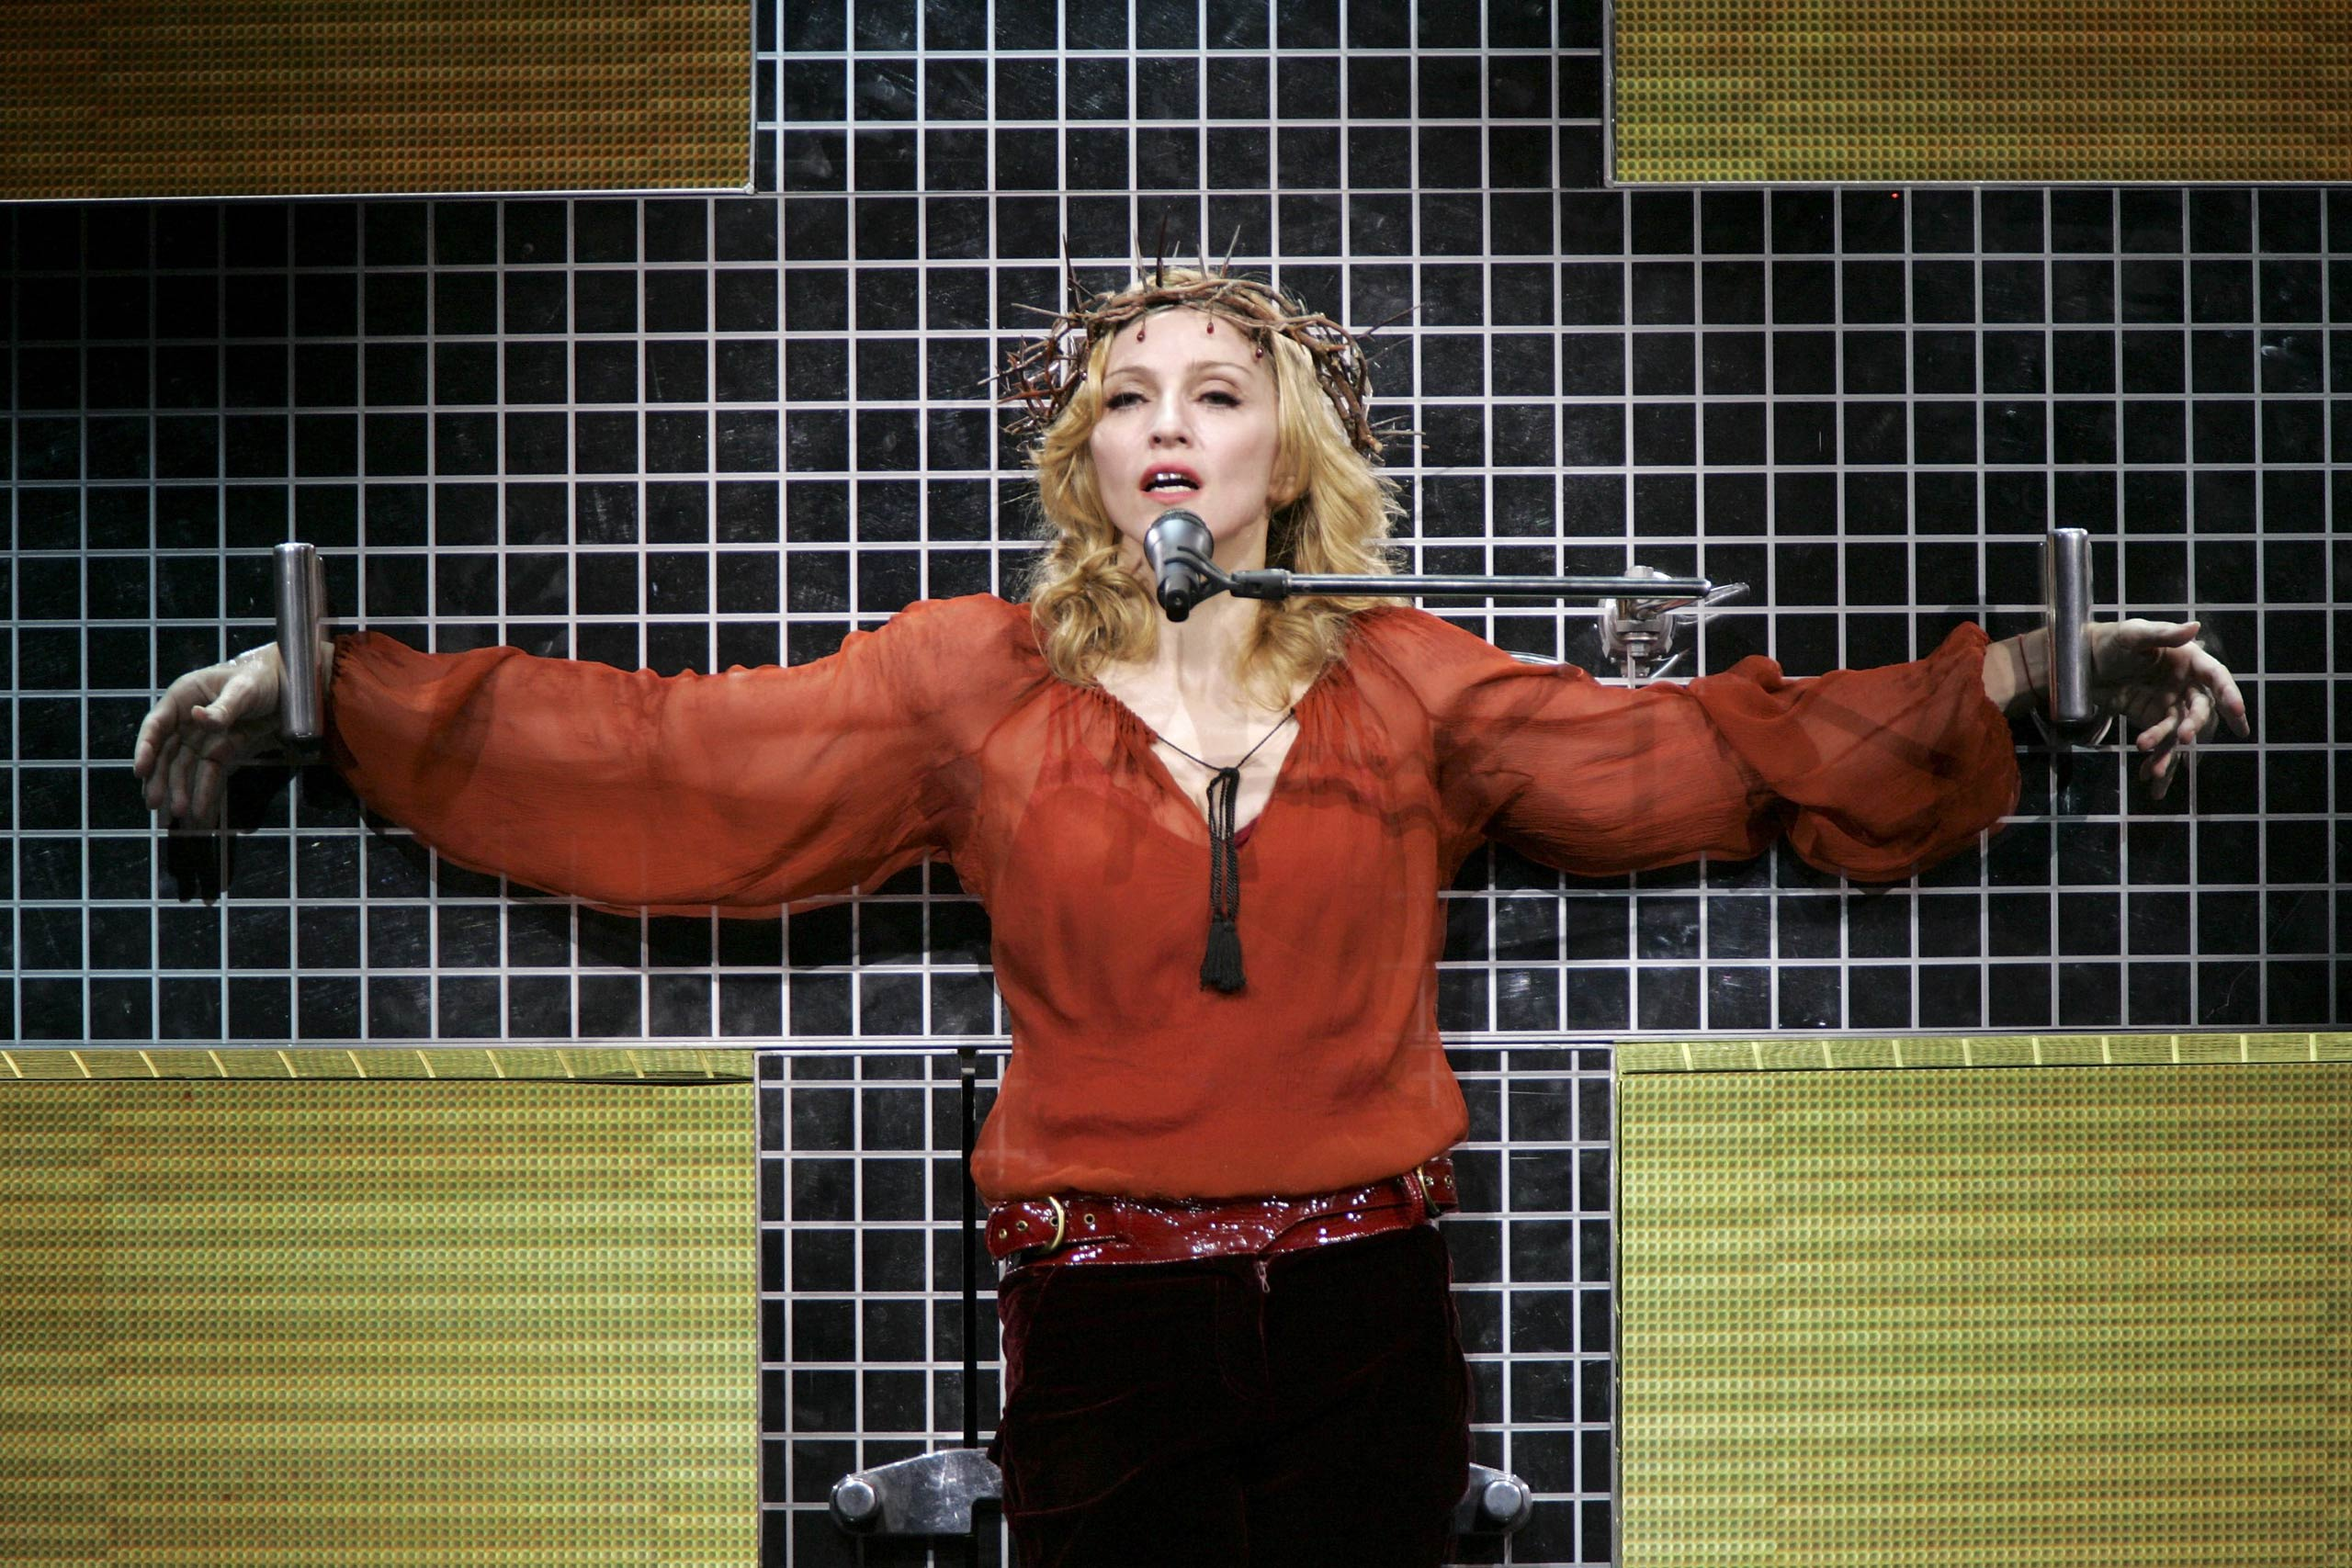 Madonna performs at the Wembley Arena in London, England in 2006.